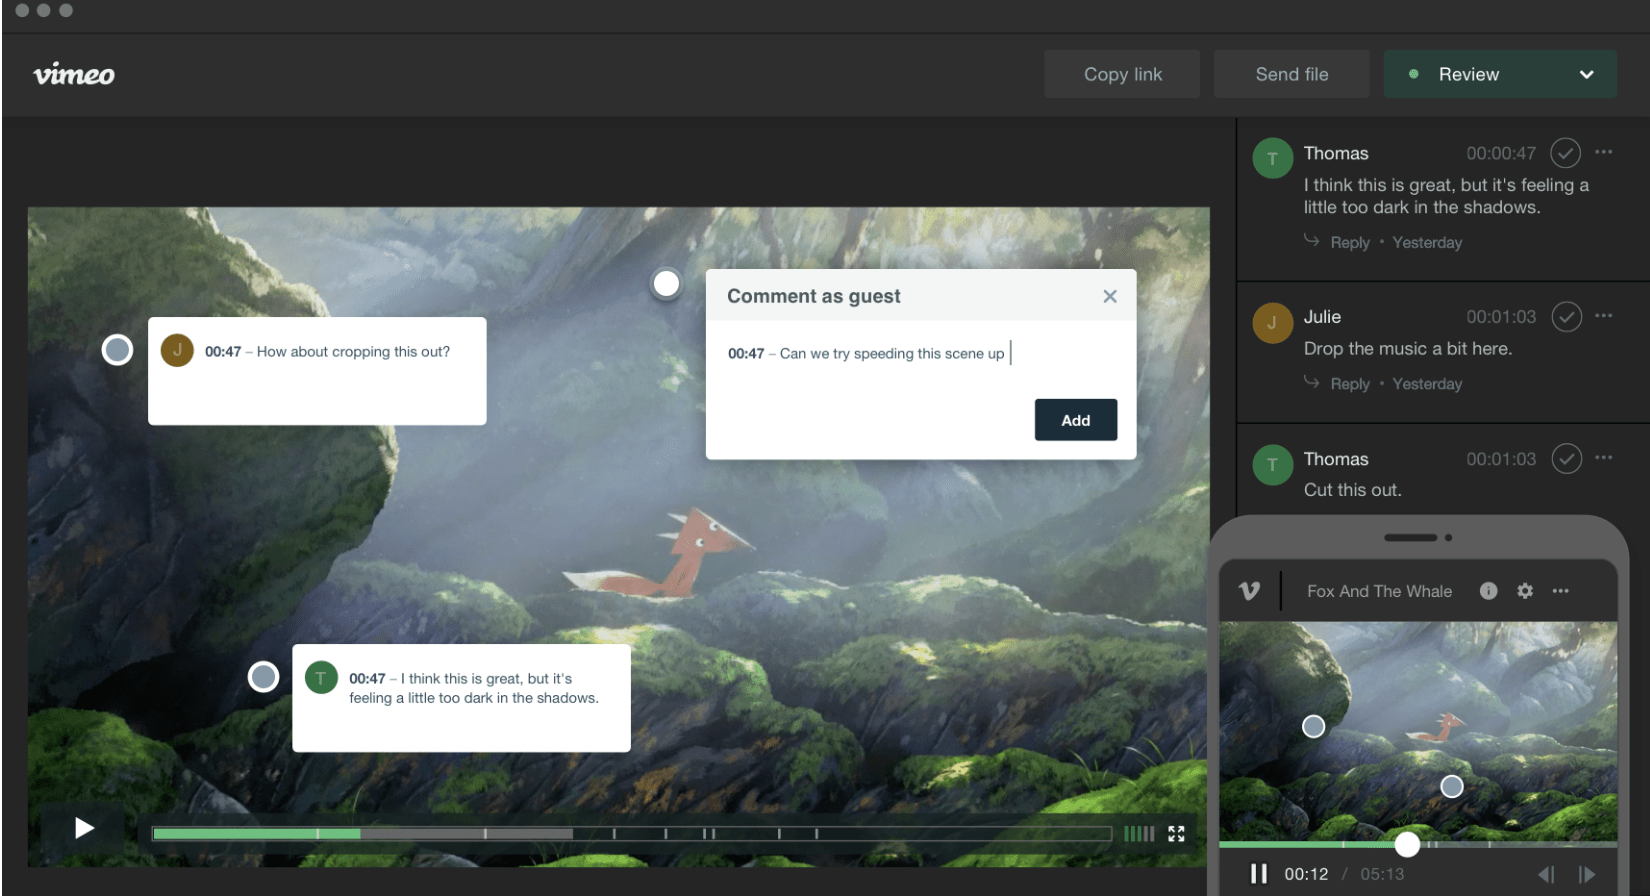 Vimeo collaboration tool